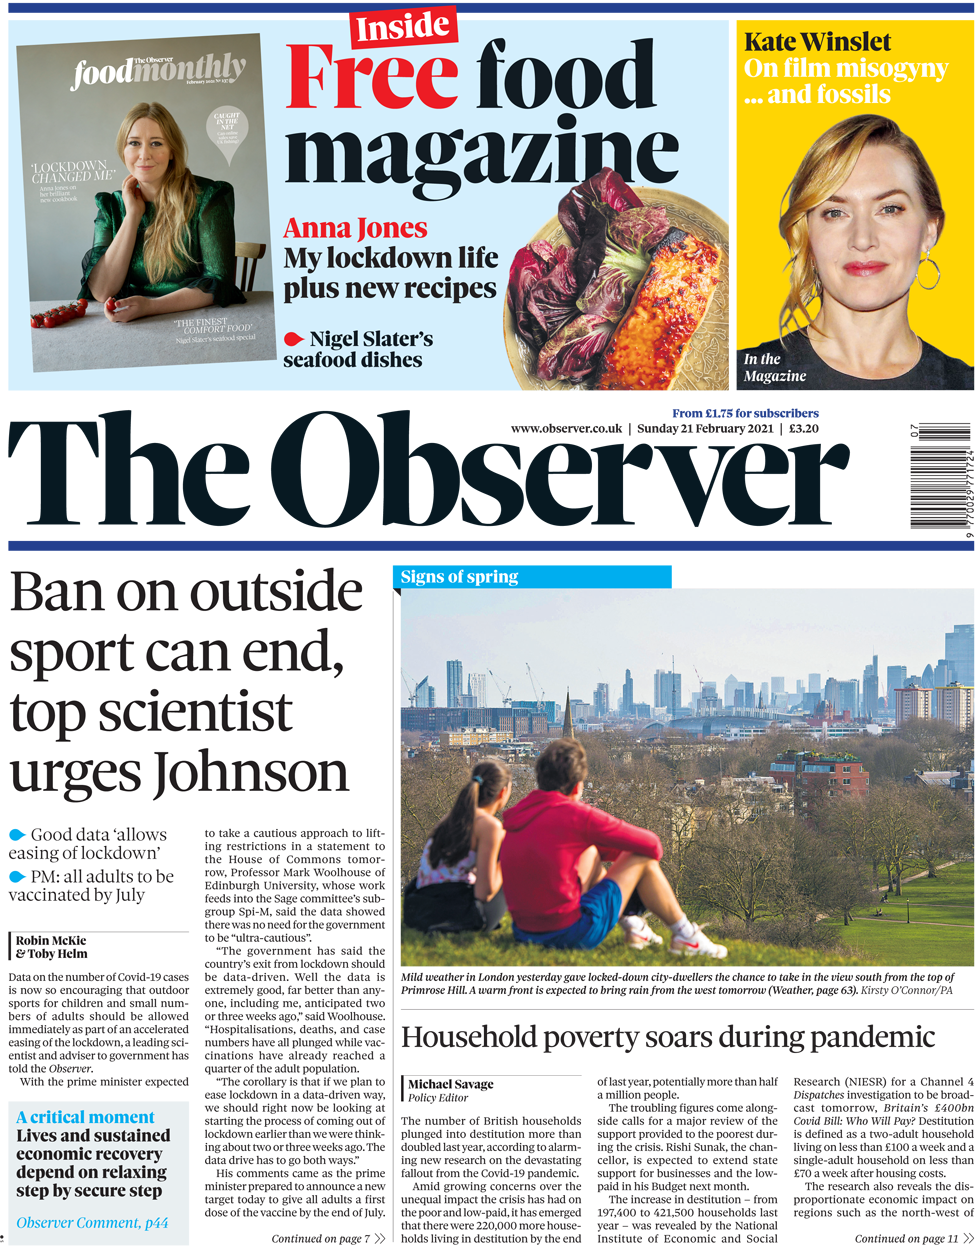 The Observer front page 21 February 2021